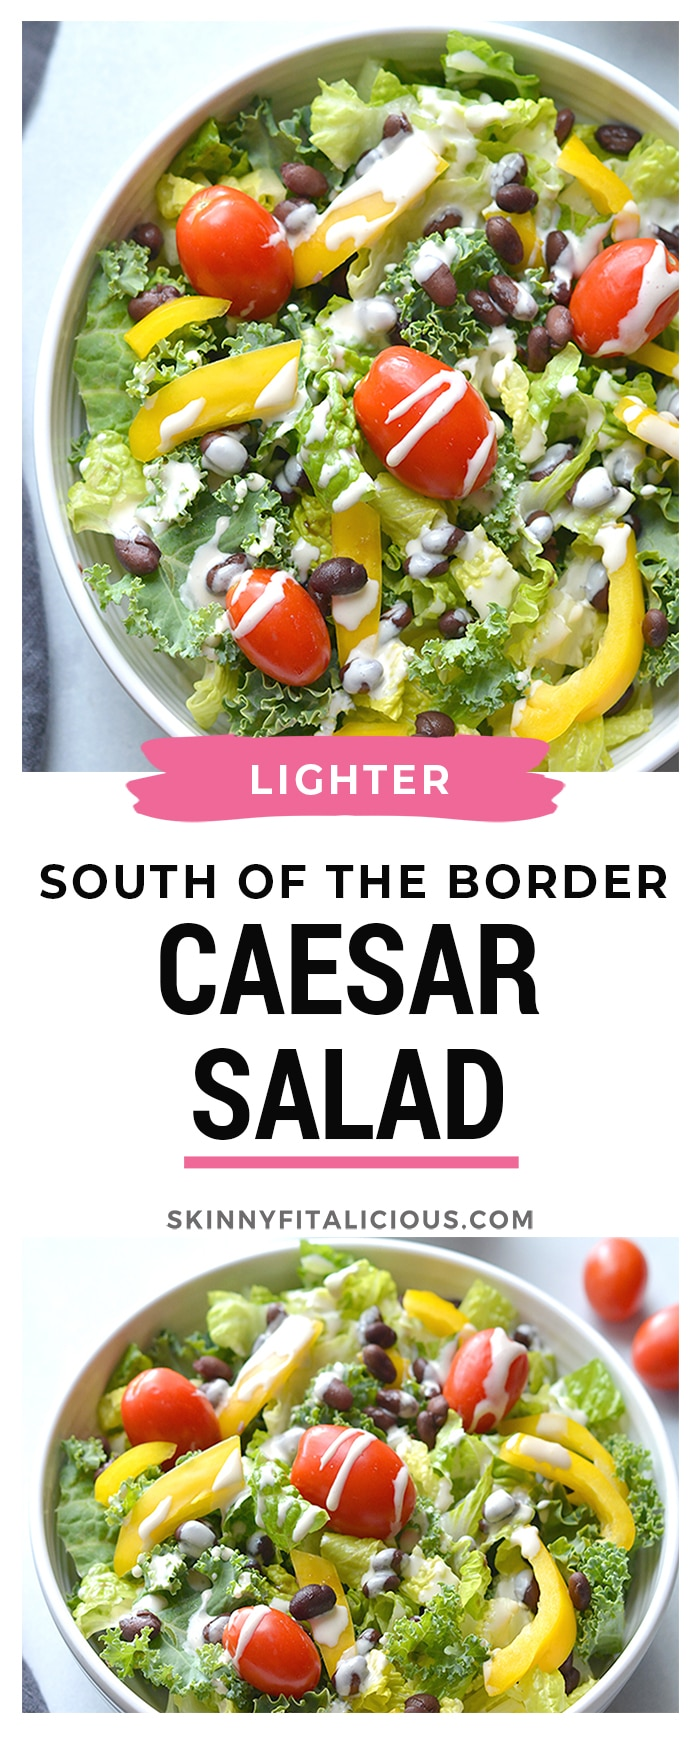 South Of The Border Caesar Salad! A classic salad made healthier with homemade Caesar dressing and a blend of kale and romaine lettuce. Topped with black beans and bell peppers for a Mexicanflare. Gluten Free + Low Calorie